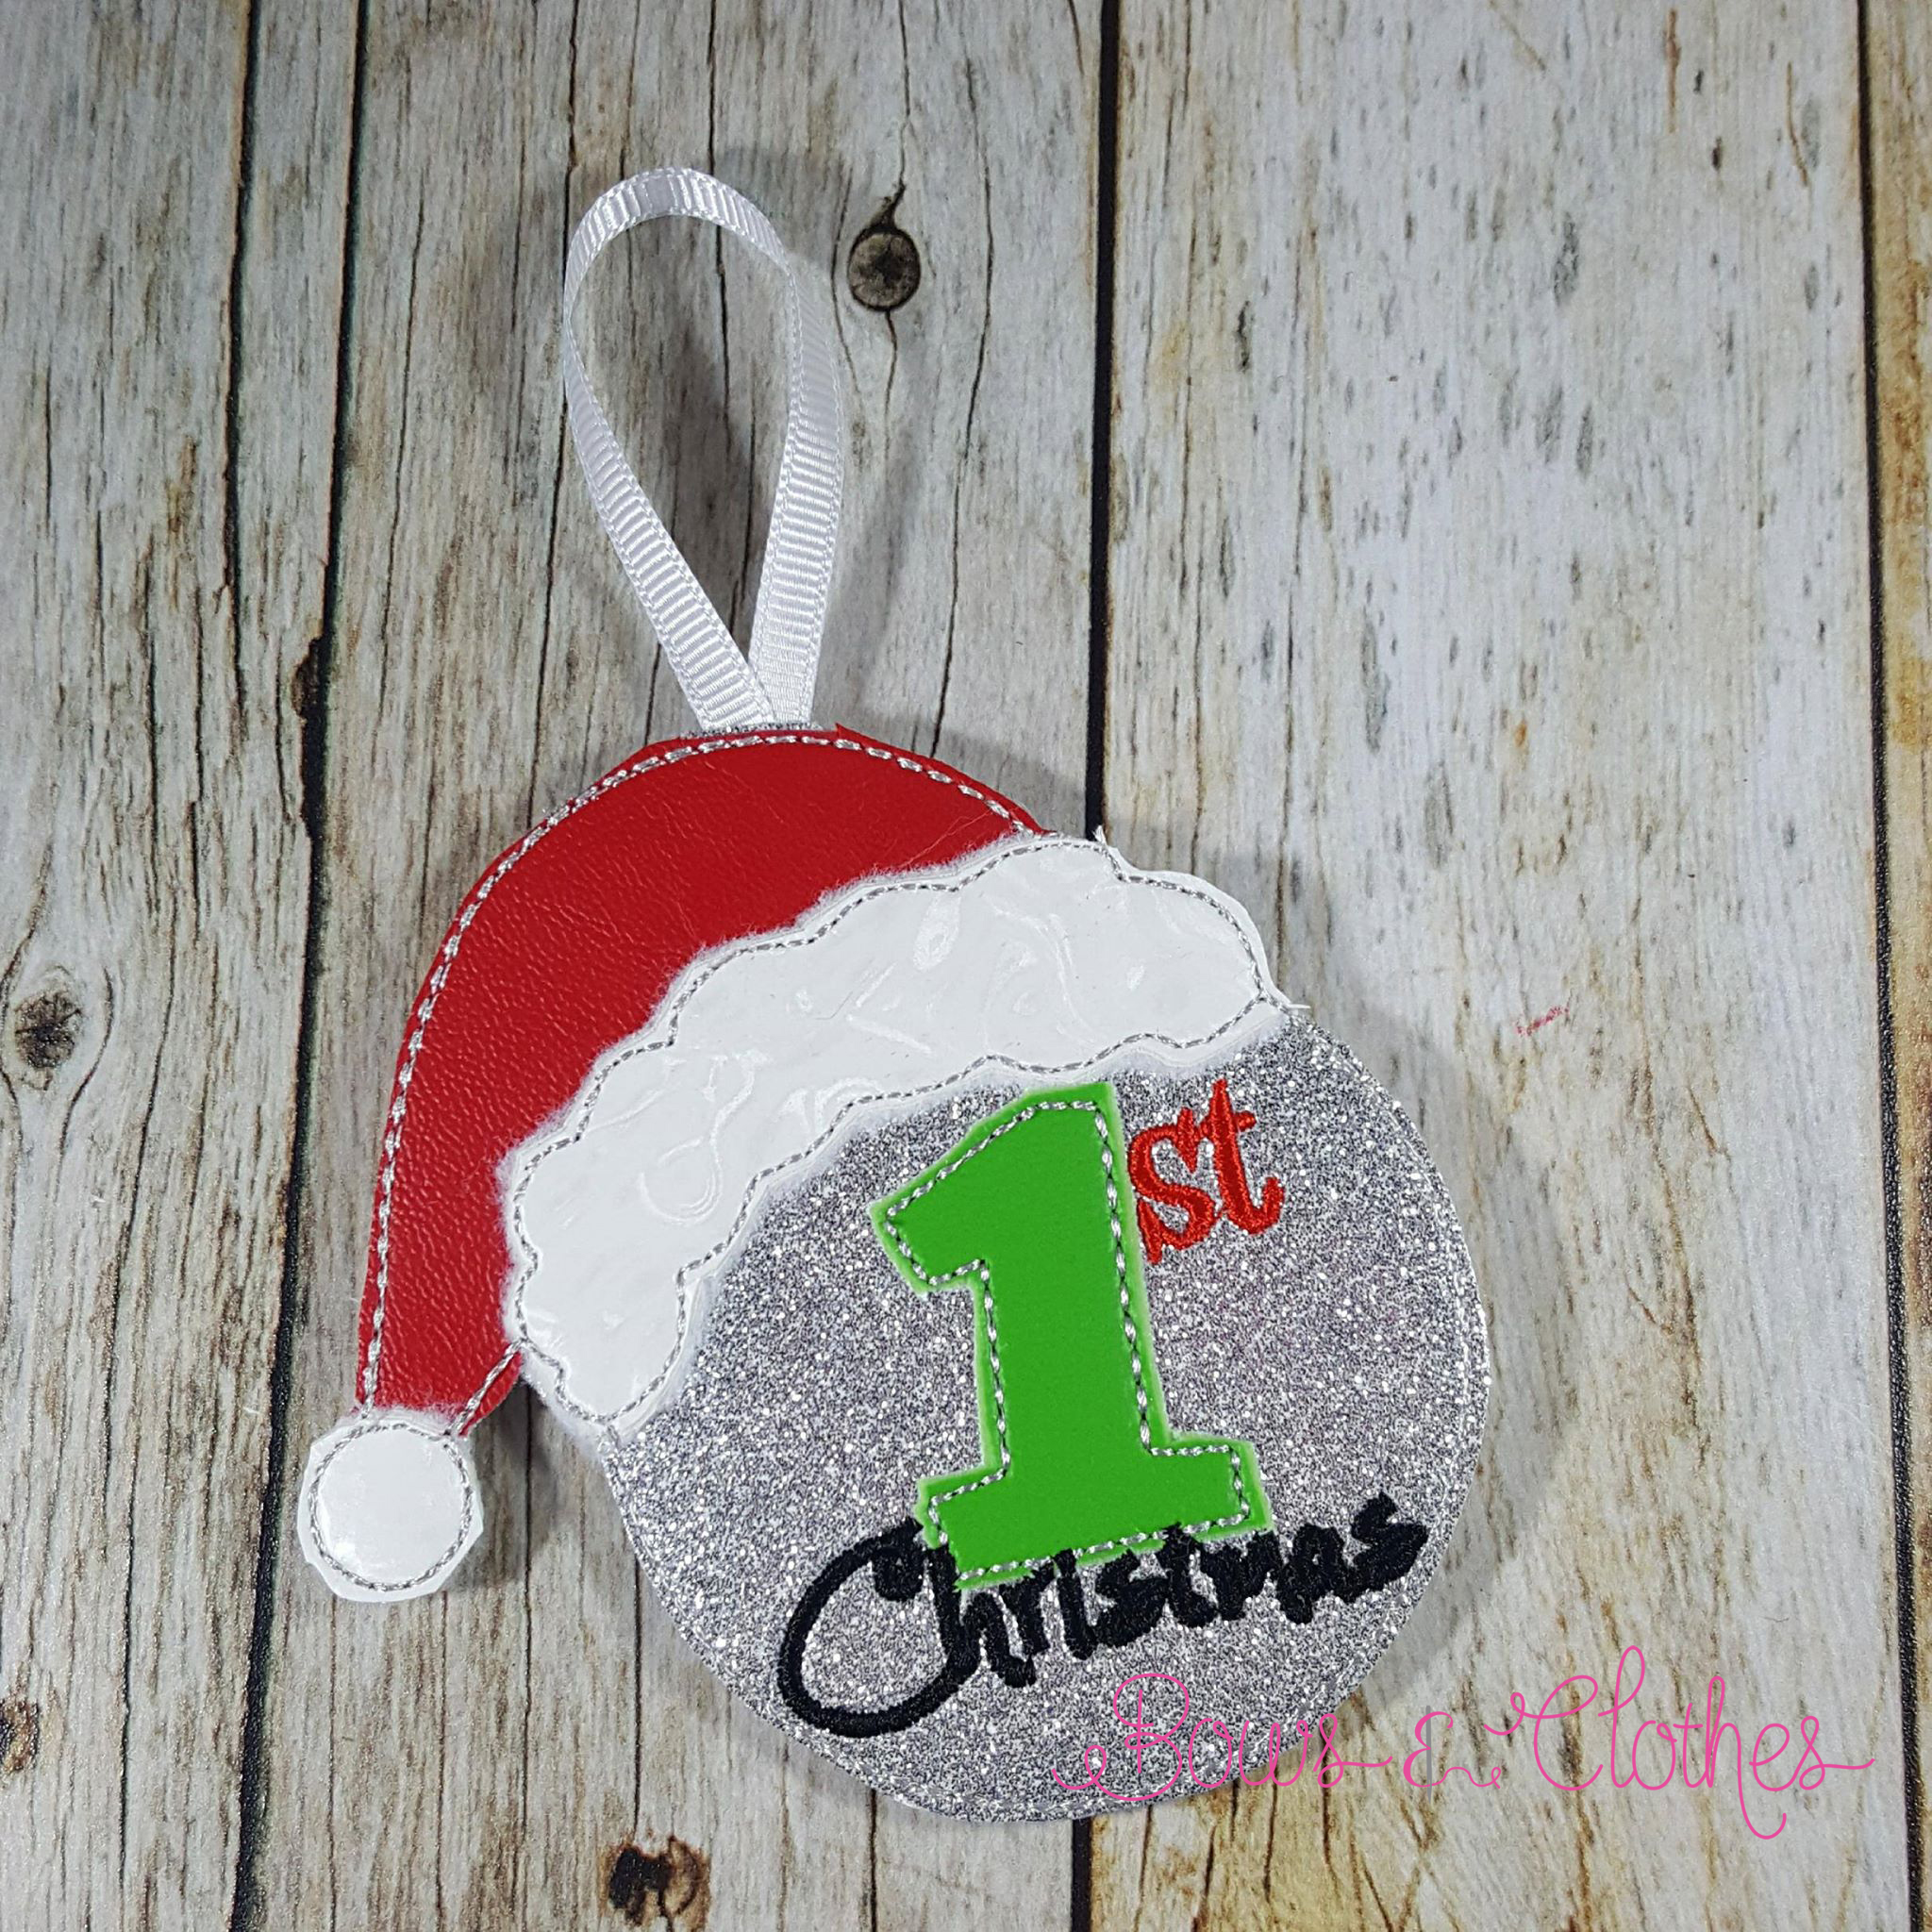 Tags & Ornaments